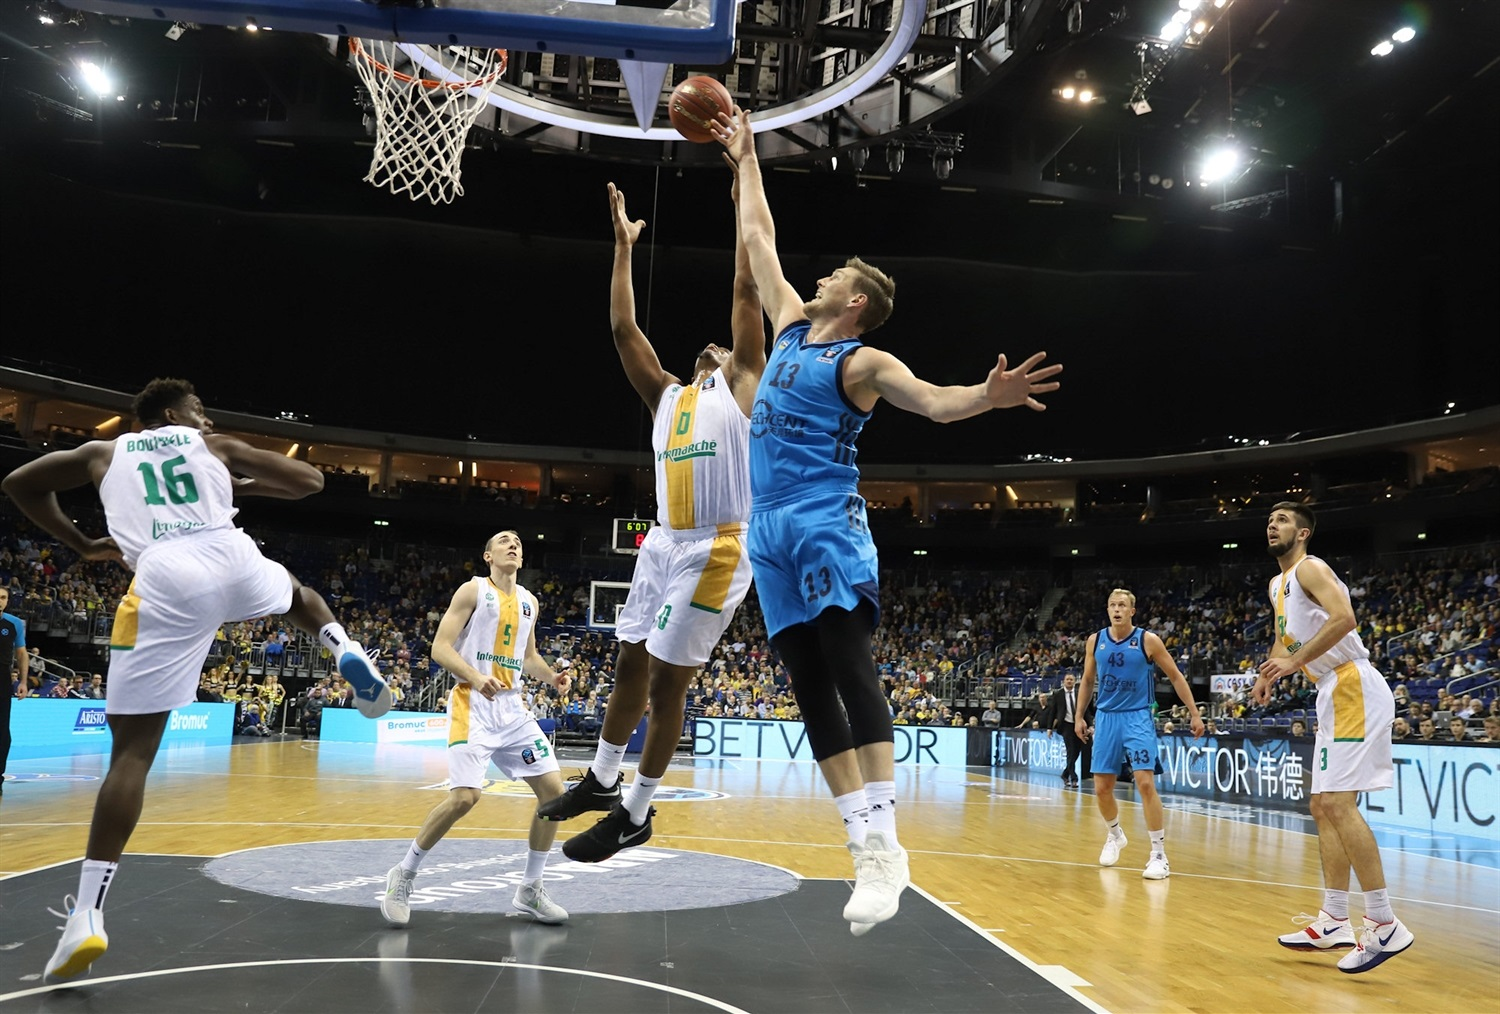 Clint Chapman - ALBA Berlin (photo Andreas Knopf - ALBA) - EC18